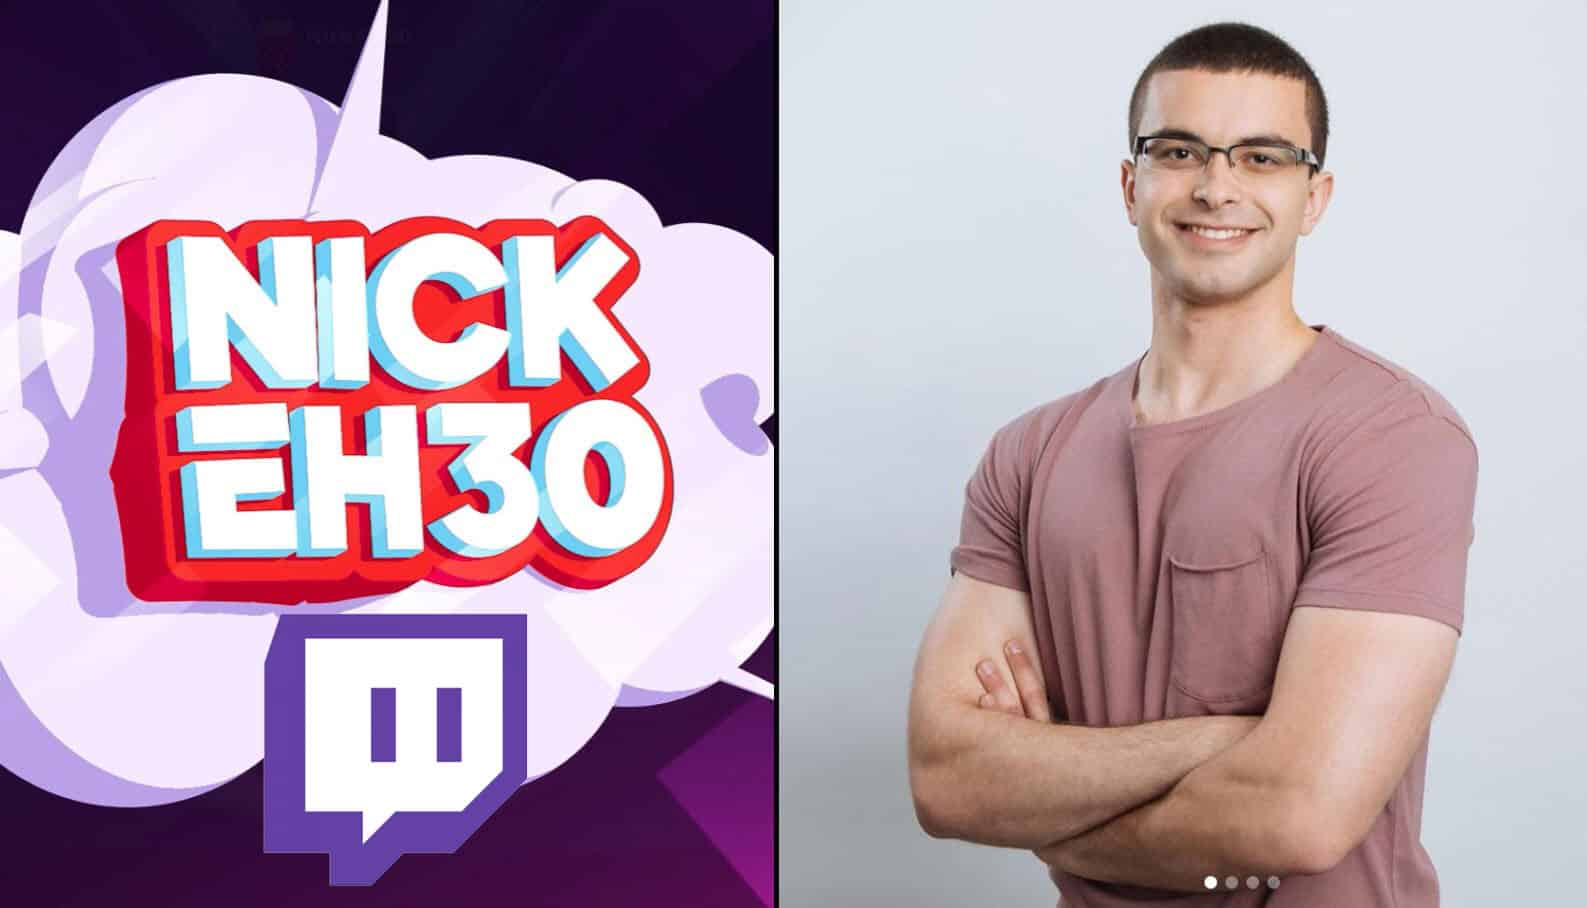 Nick Eh 30 Gains 250,000 On His First Day On Twitch